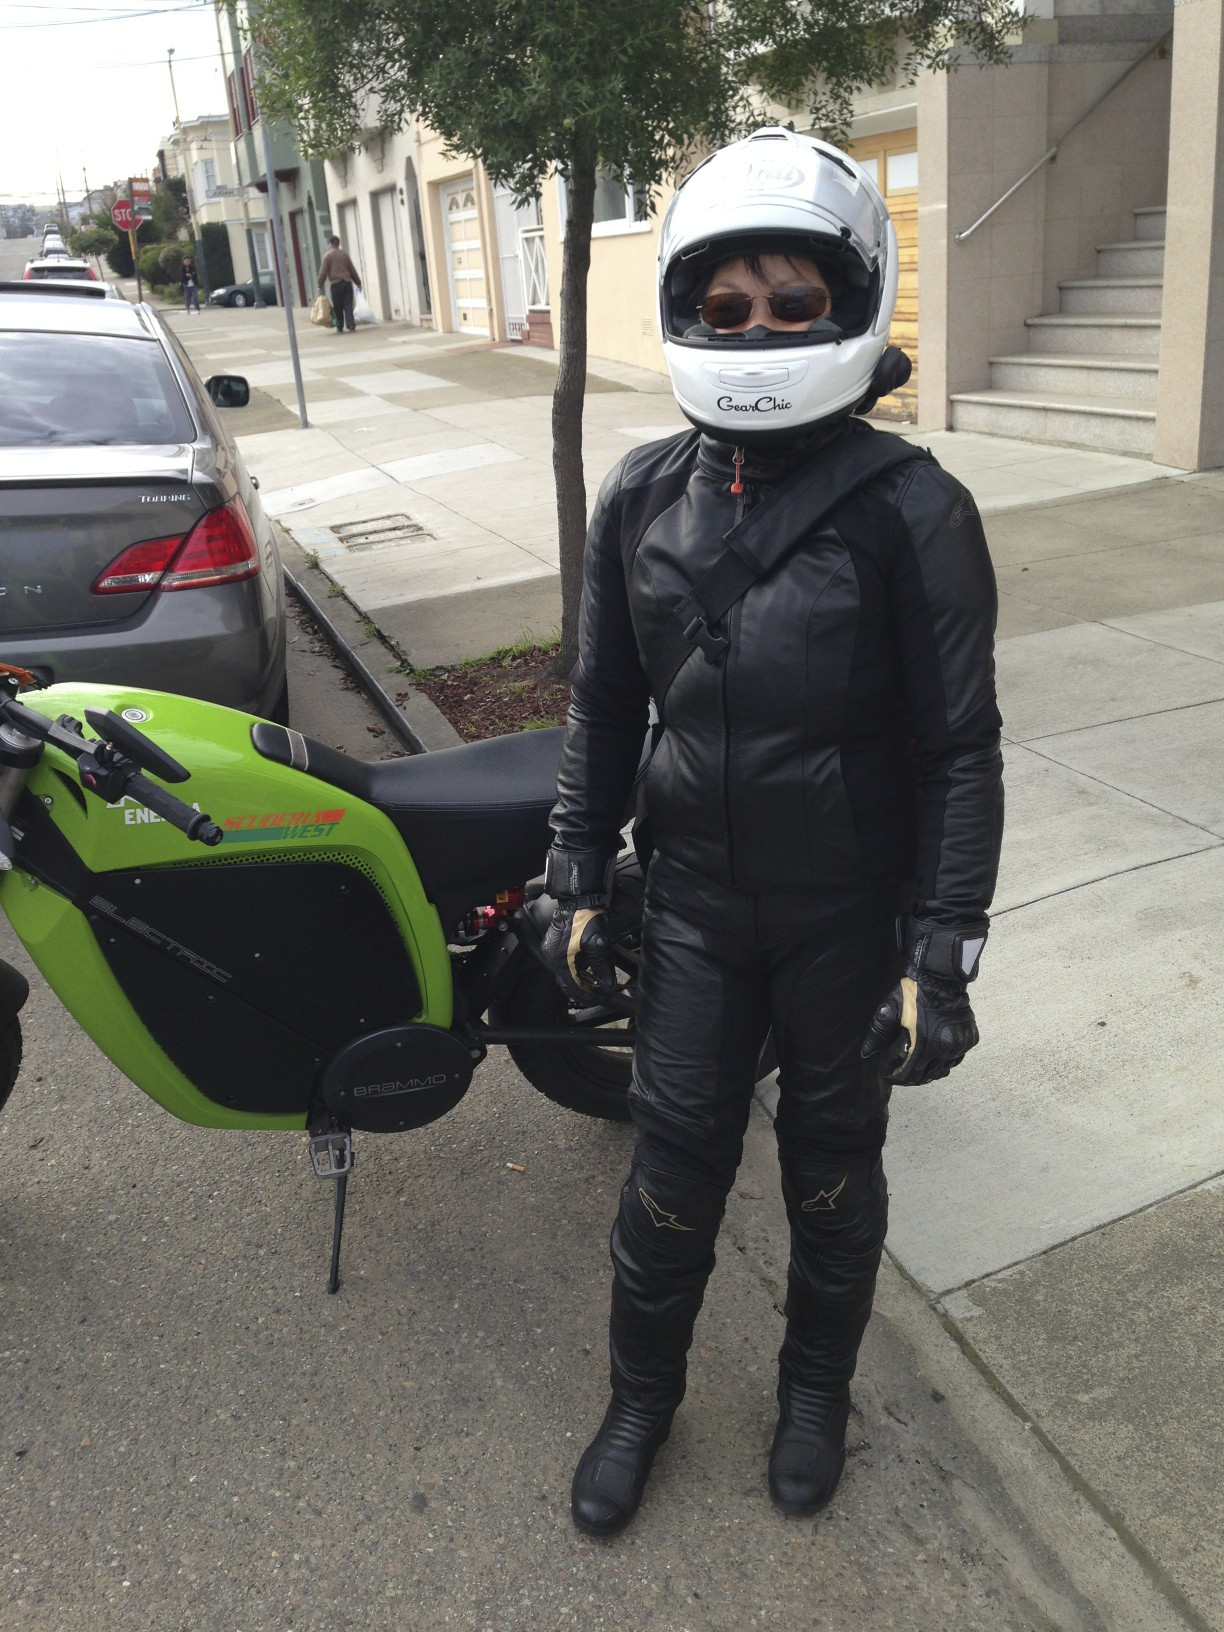 Alpinestars Vika Leather Pants Review by GearChic.com — GearChic 3e81153774